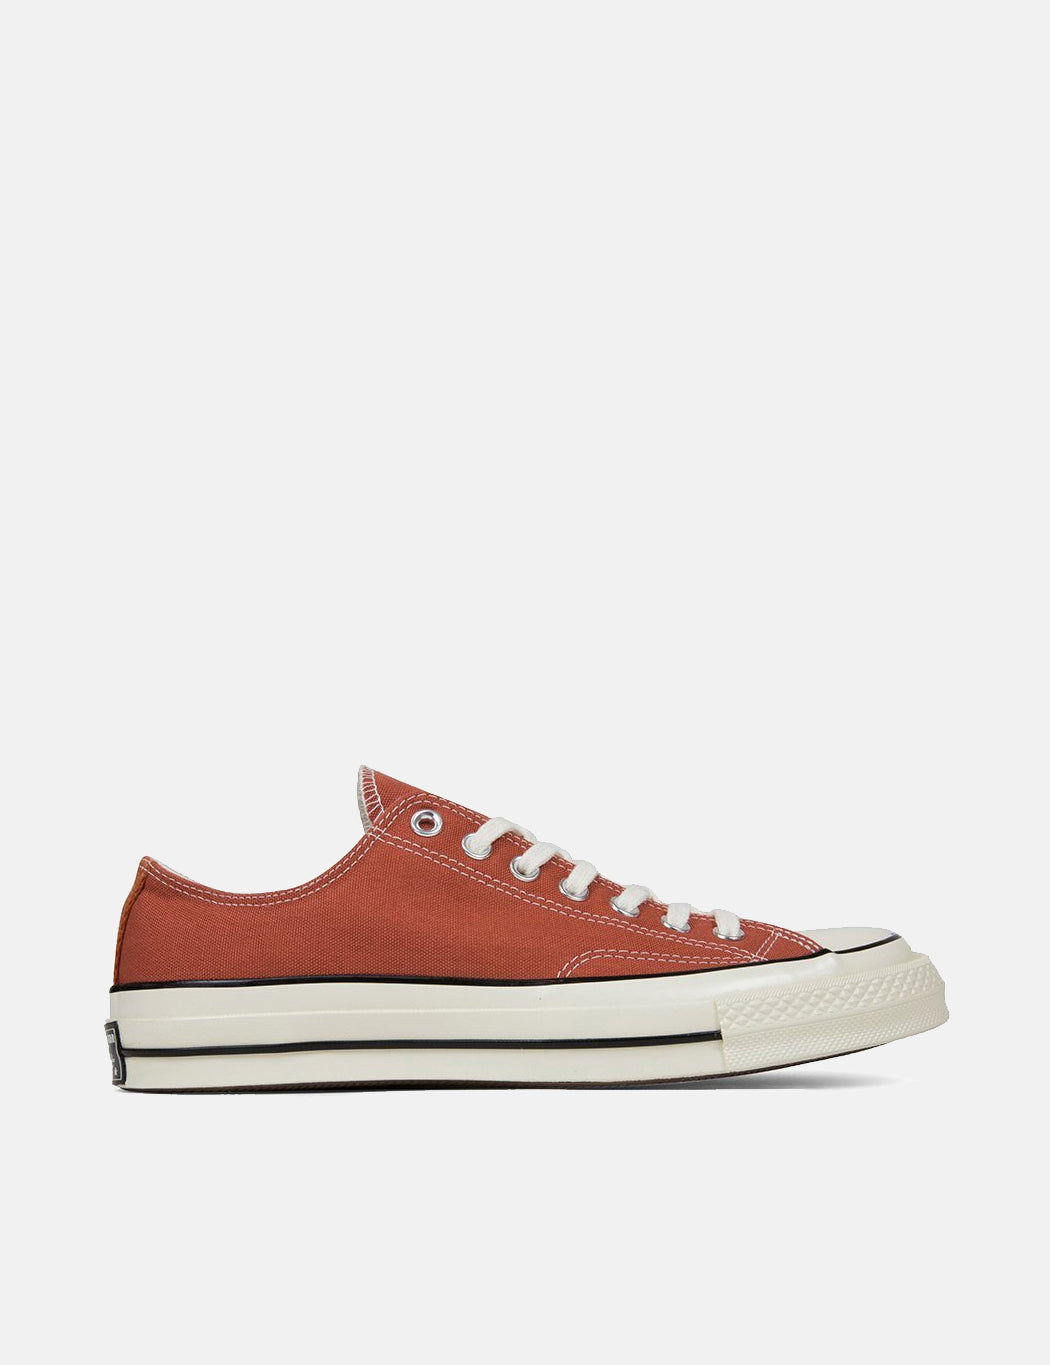 829a3b5f Converse 70's Chuck Low 161505C (Canvas) in Terracotta Red/Black/Egret